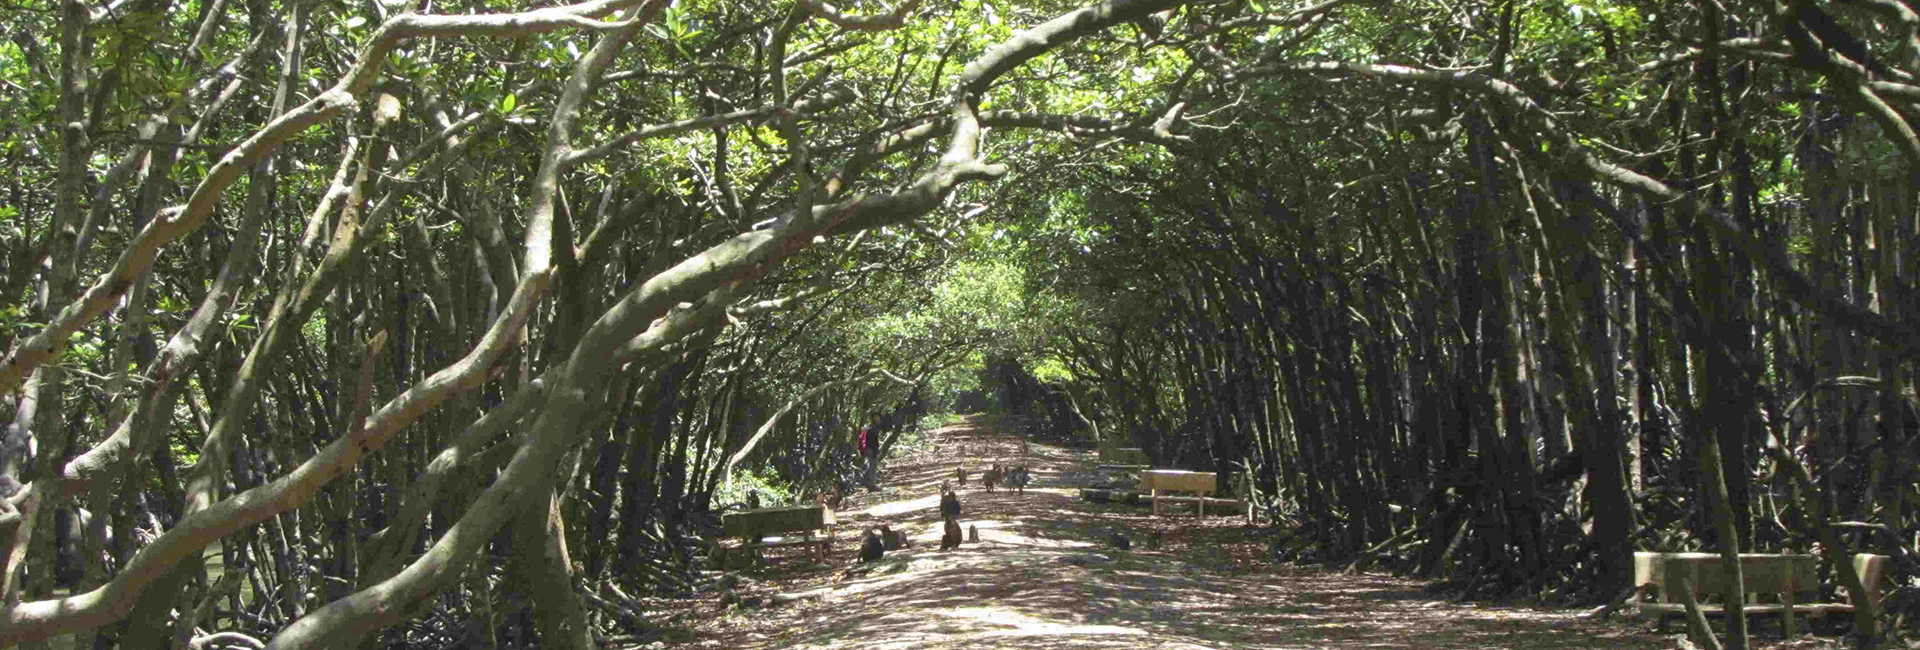 Can Gio Mangrove Forest full day tour